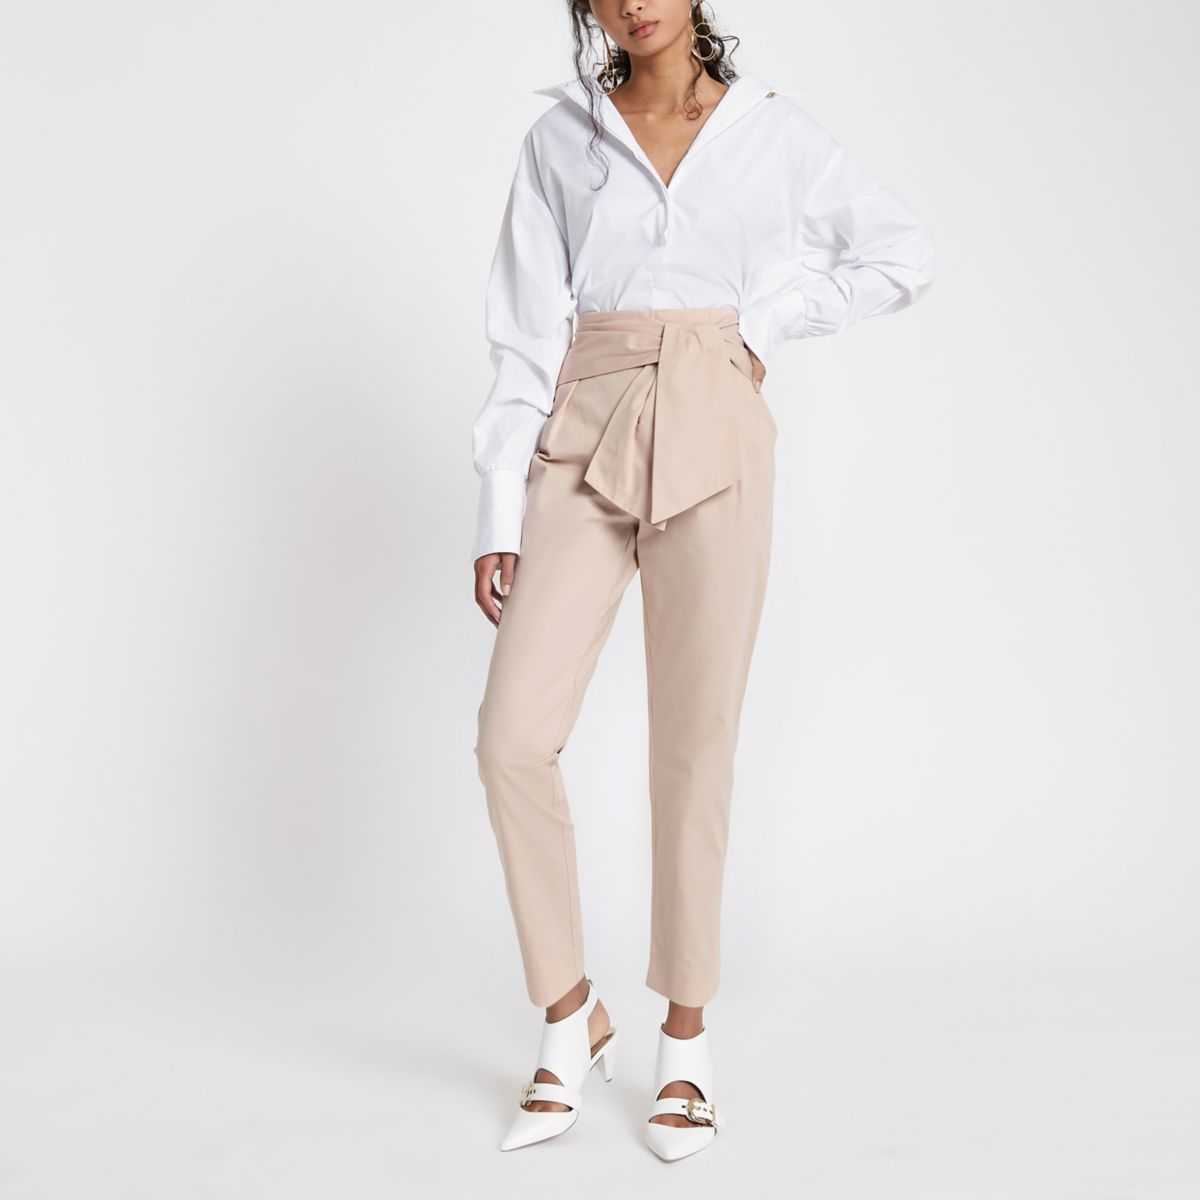 Pink tie front peg trousers